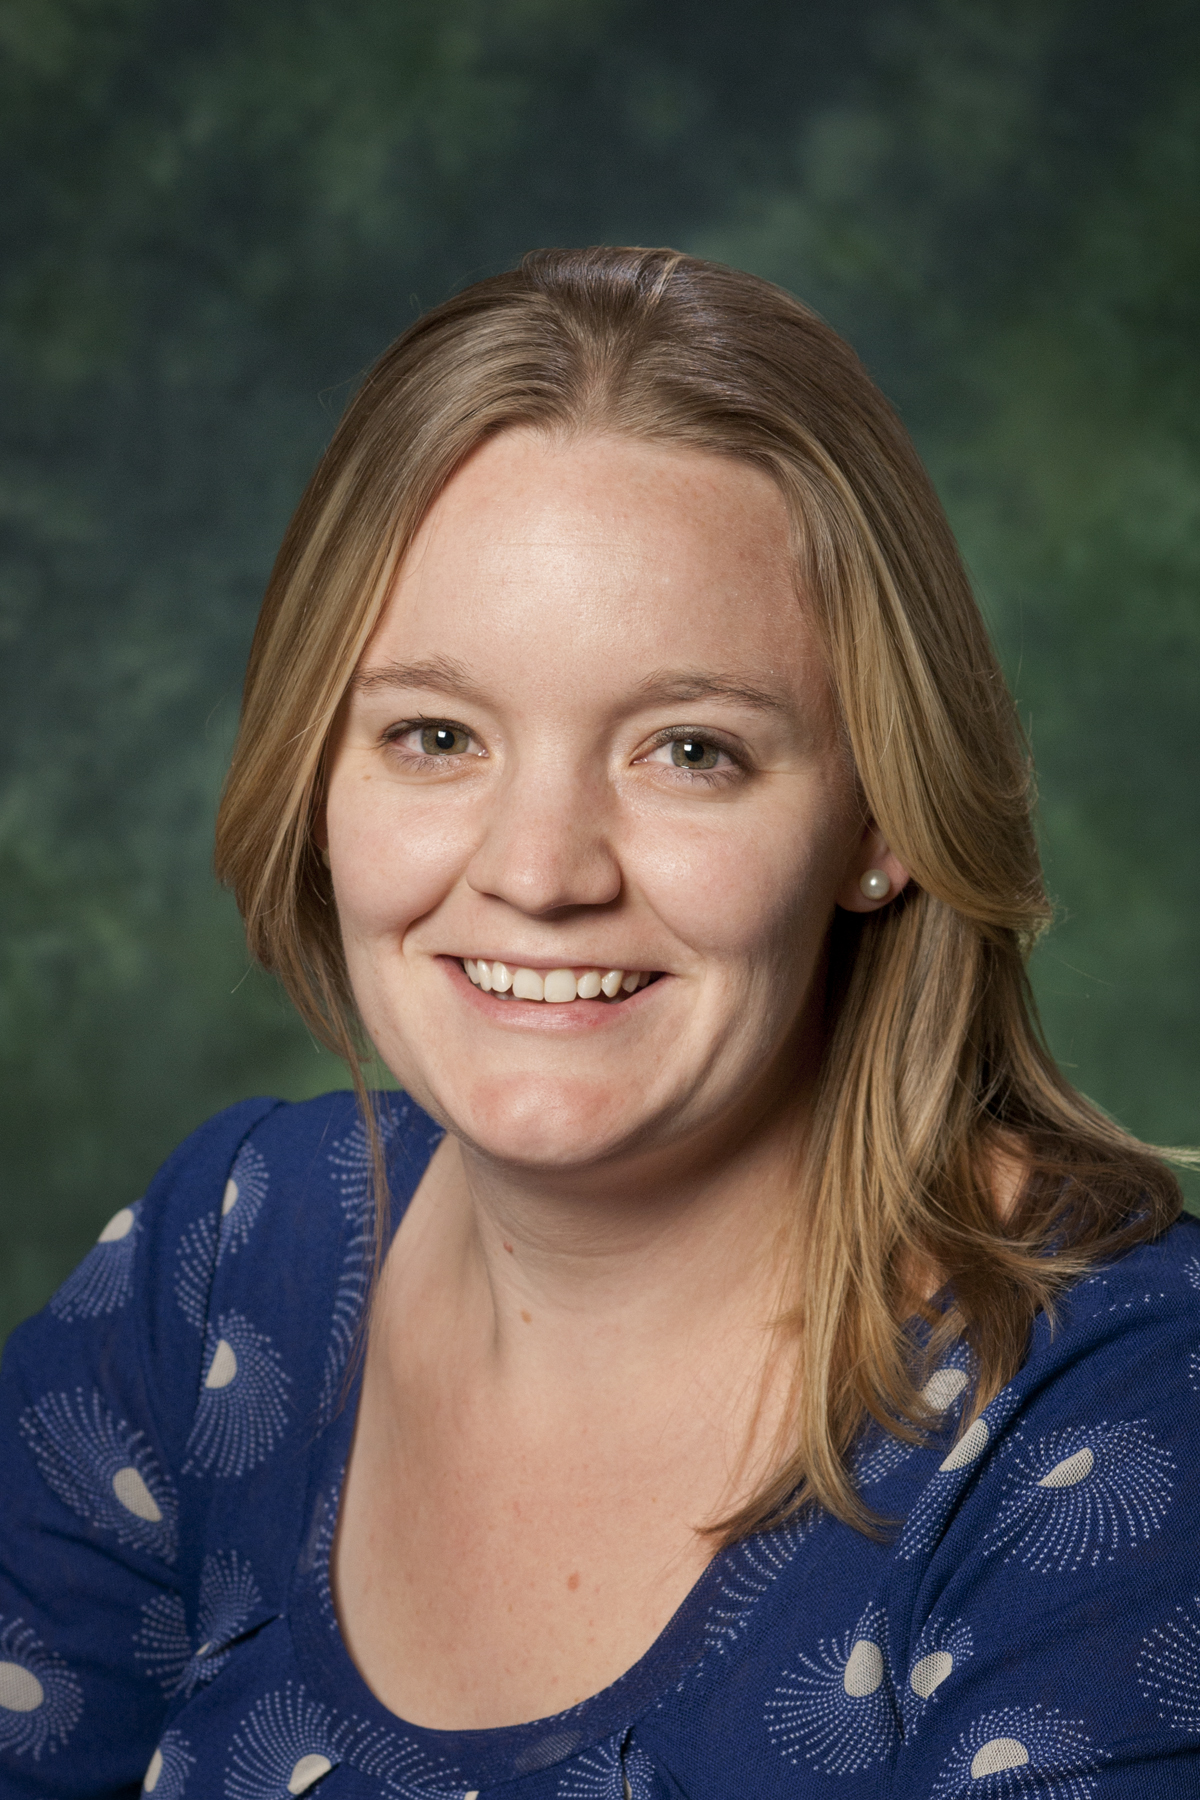 Rachel Grimes, assistant director of outreach for the Student Money Management Center at UNT.